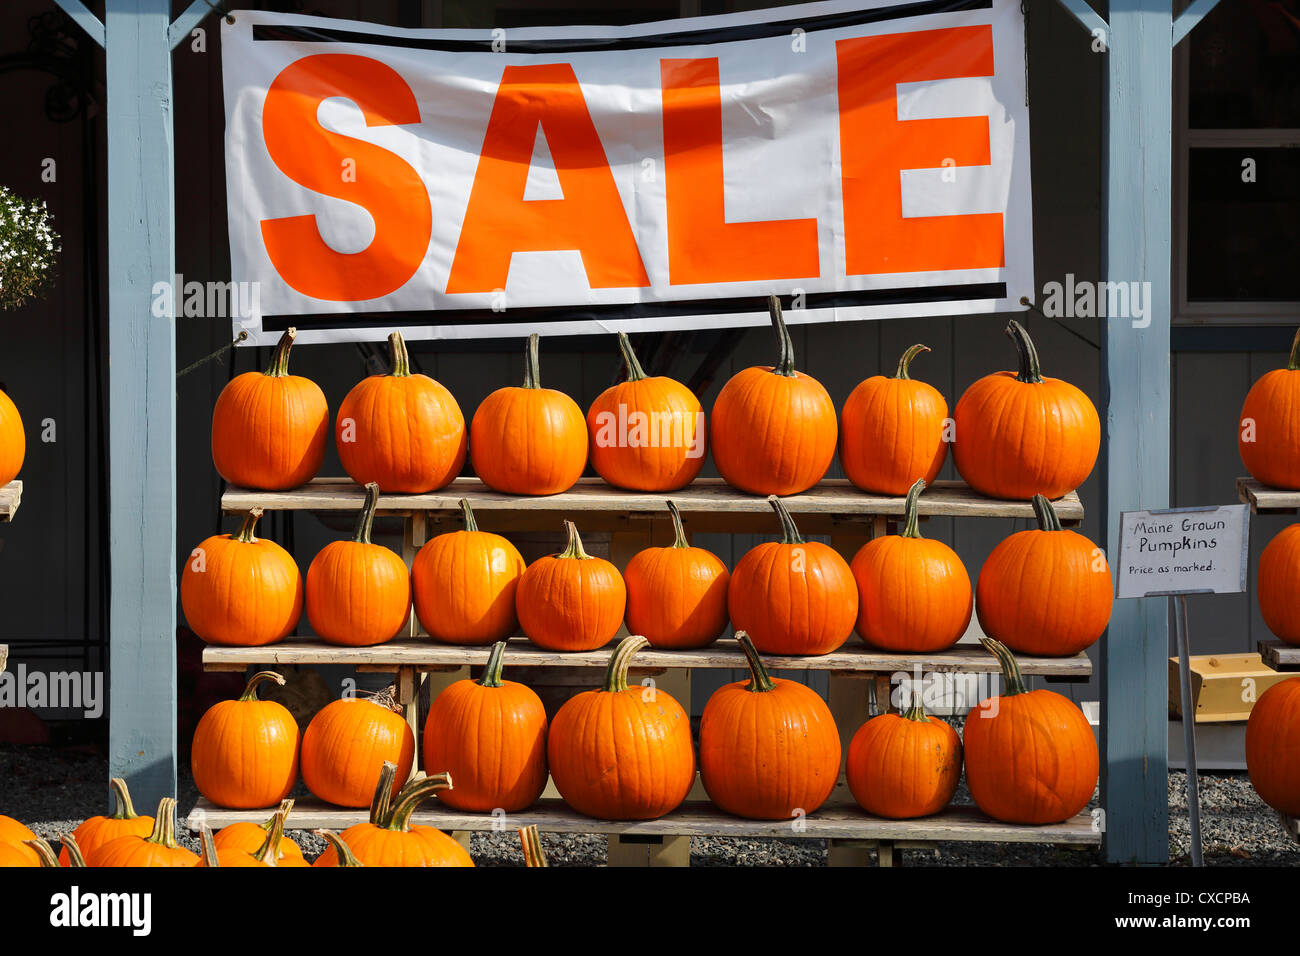 Roadside stand, pumpkins - Stock Image